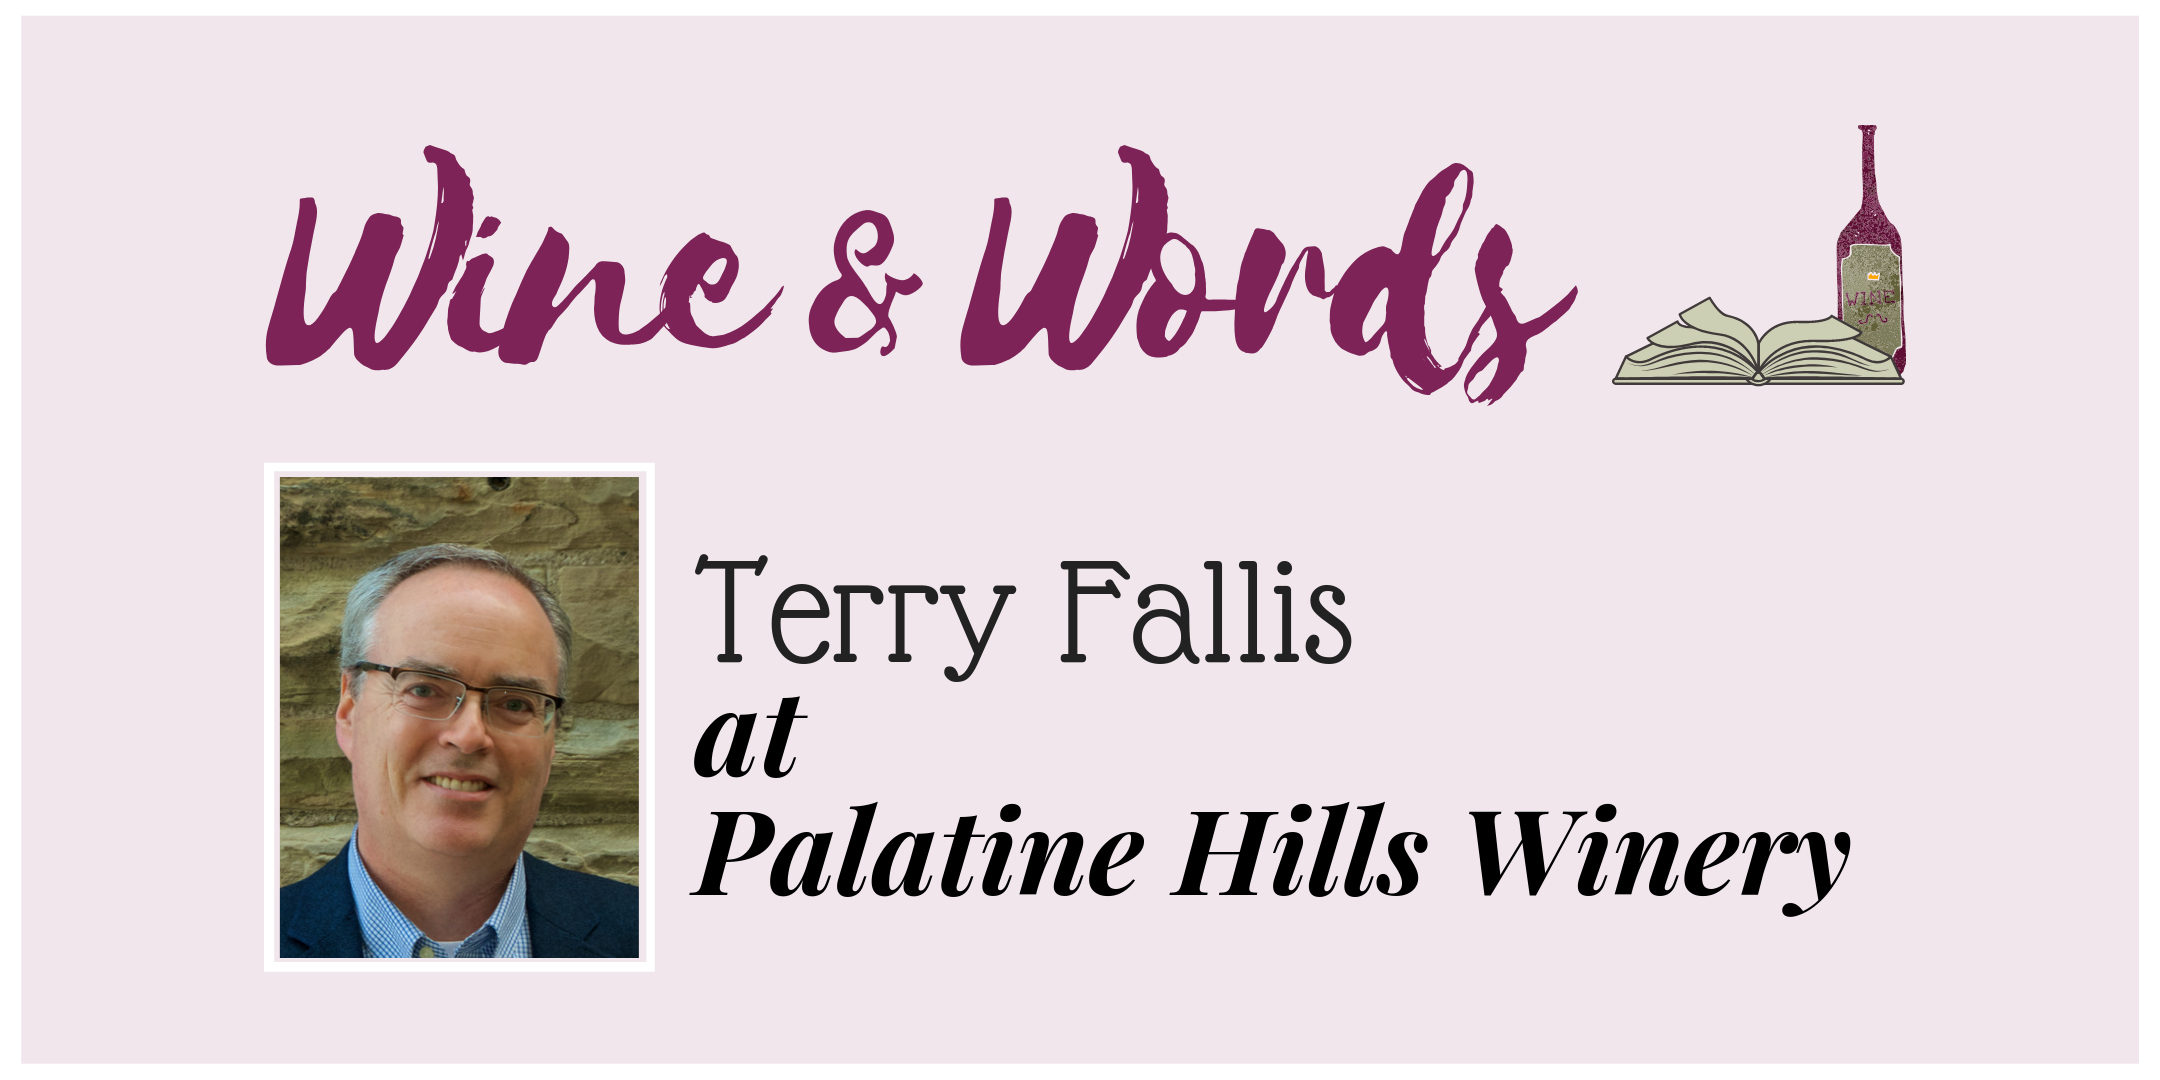 Terry Fallis at Palatine Hills Winery